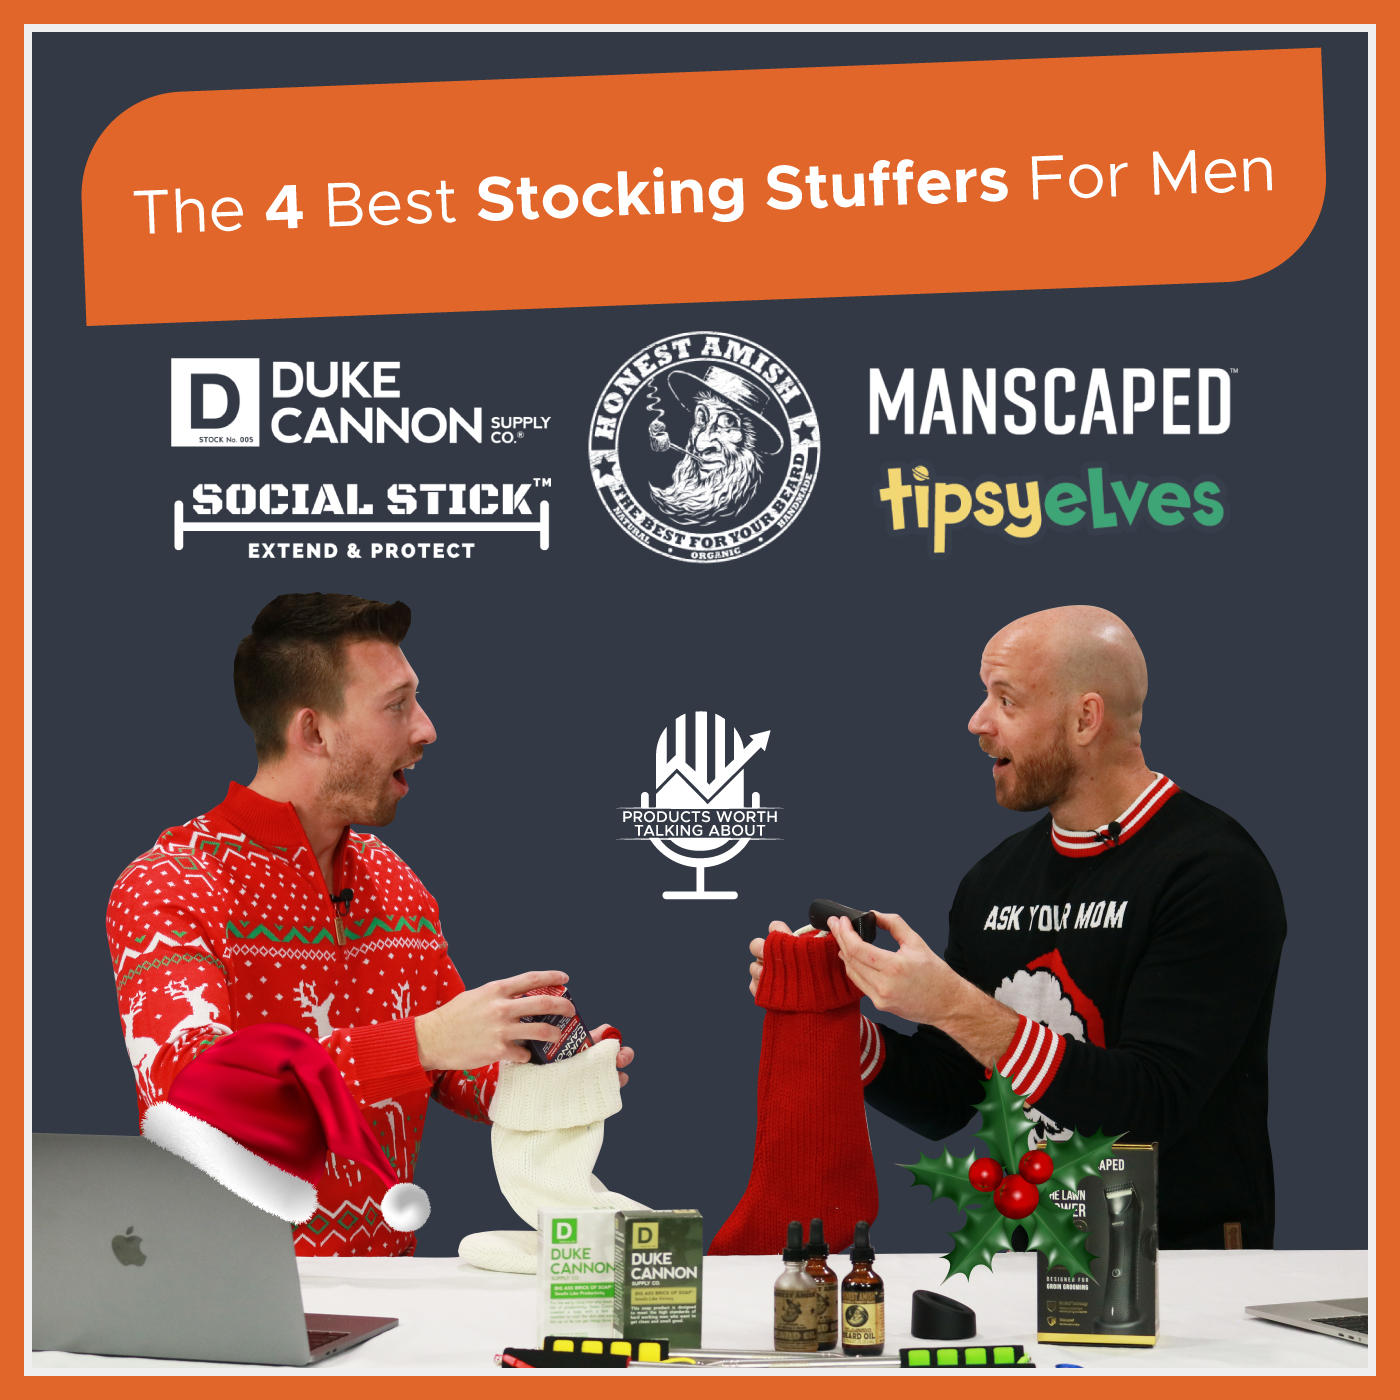 The 4 Best Stocking Stuffers For Men in 2020